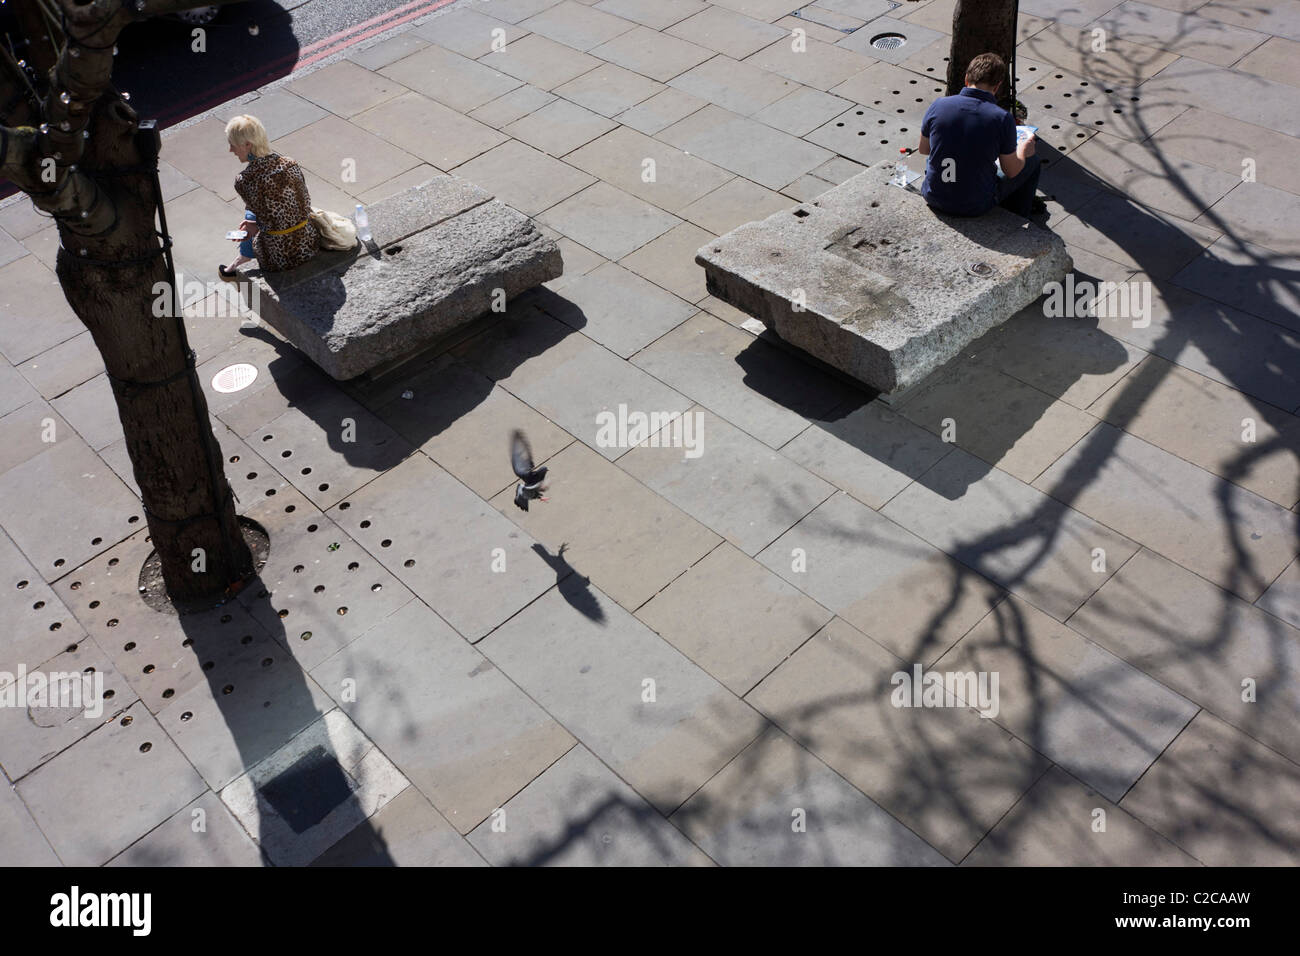 Two strangers sit adjacent each other on stone benches as a pigeon is about to land. - Stock Image